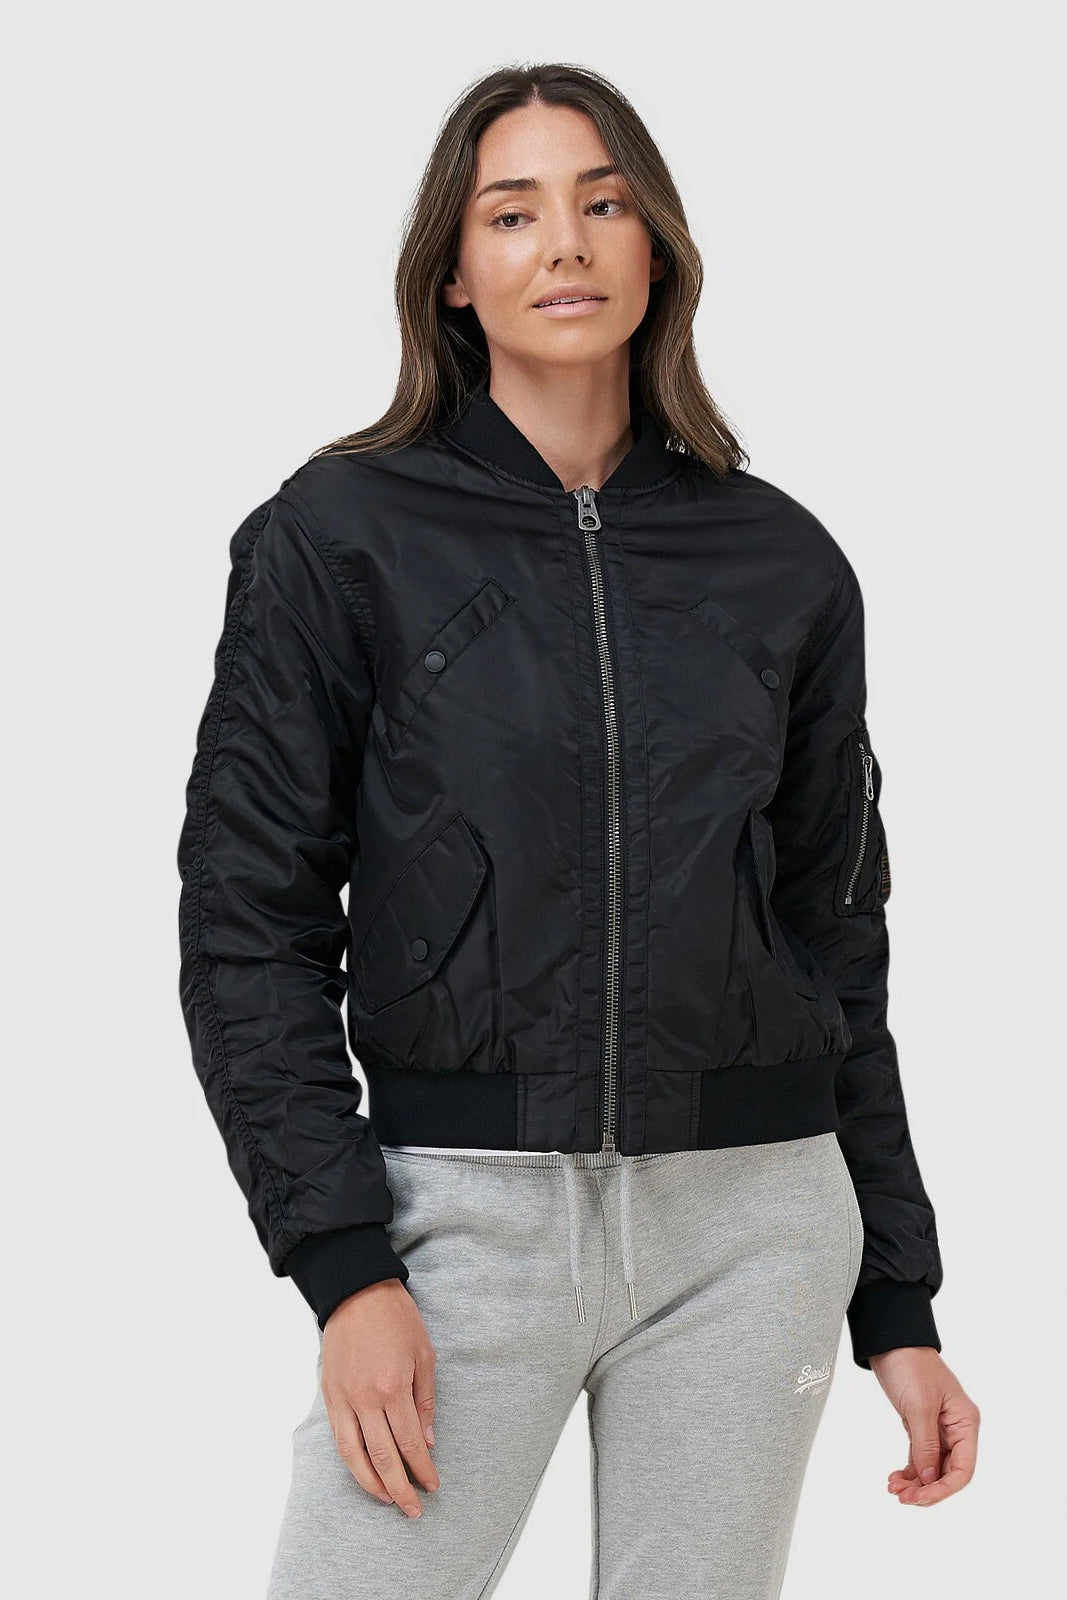 Womens Flight Bomber Jacket - Black